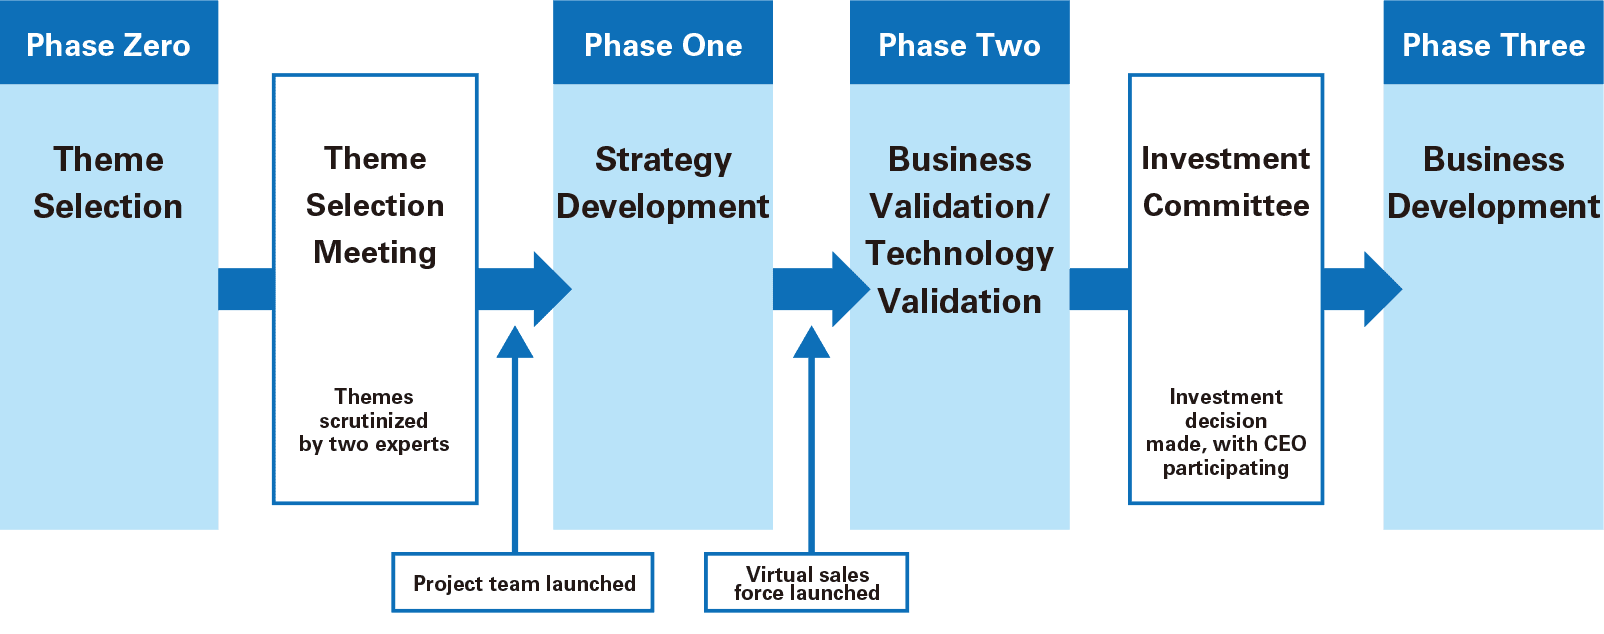 Phase Zero:Theme Selection→Theme Selection Meeting(Themes scrutinized by two experts)→Project team launched→Phase One:Strategy Development→Virtual sales force launched→Phase Two:Business Validation/ Technology Validation→Investment Committee(Investment decision made, with CEO participating)→Phase Three:Business Development